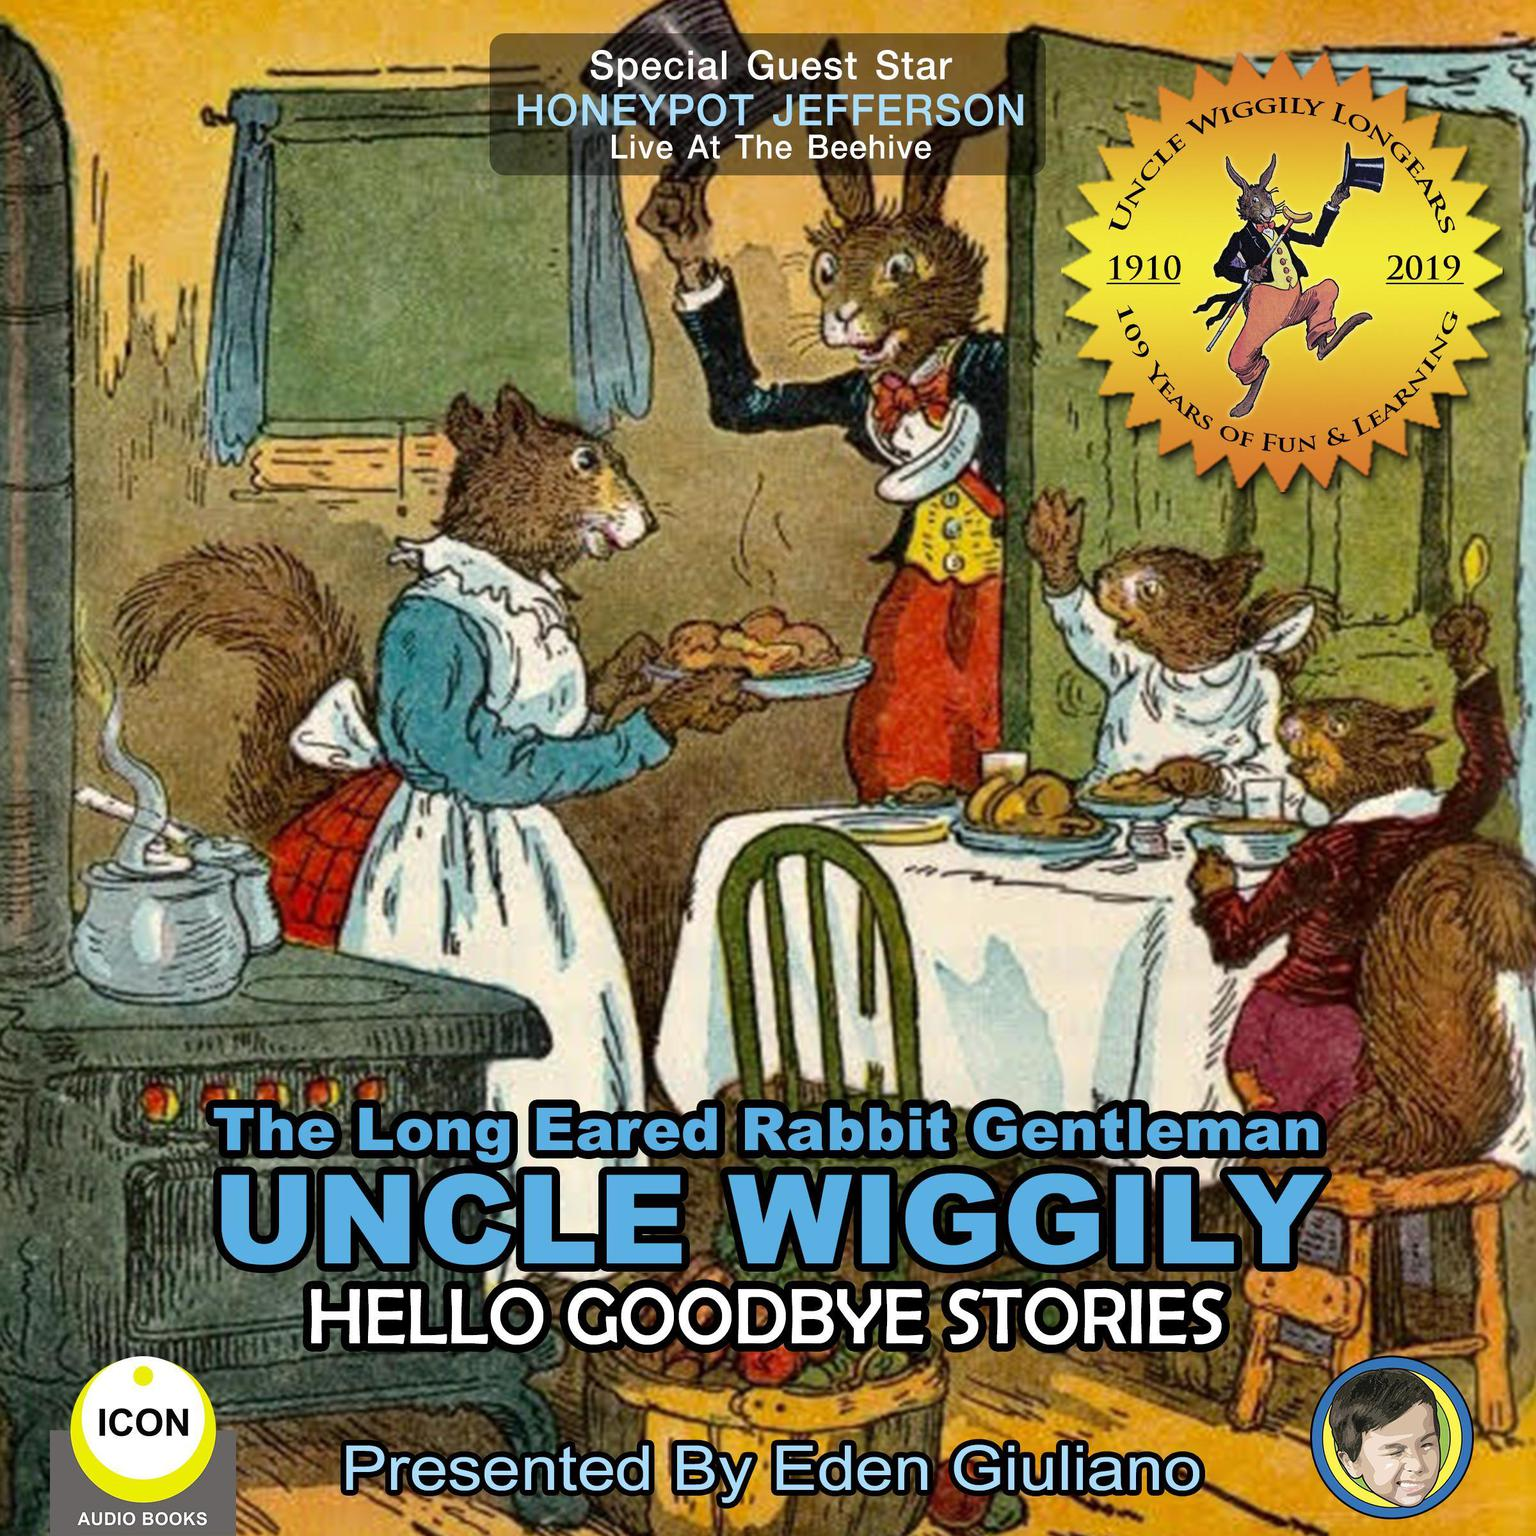 Printable The Long Eared Rabbit Gentleman Uncle Wiggily - Hello Goodbye Stories Audiobook Cover Art